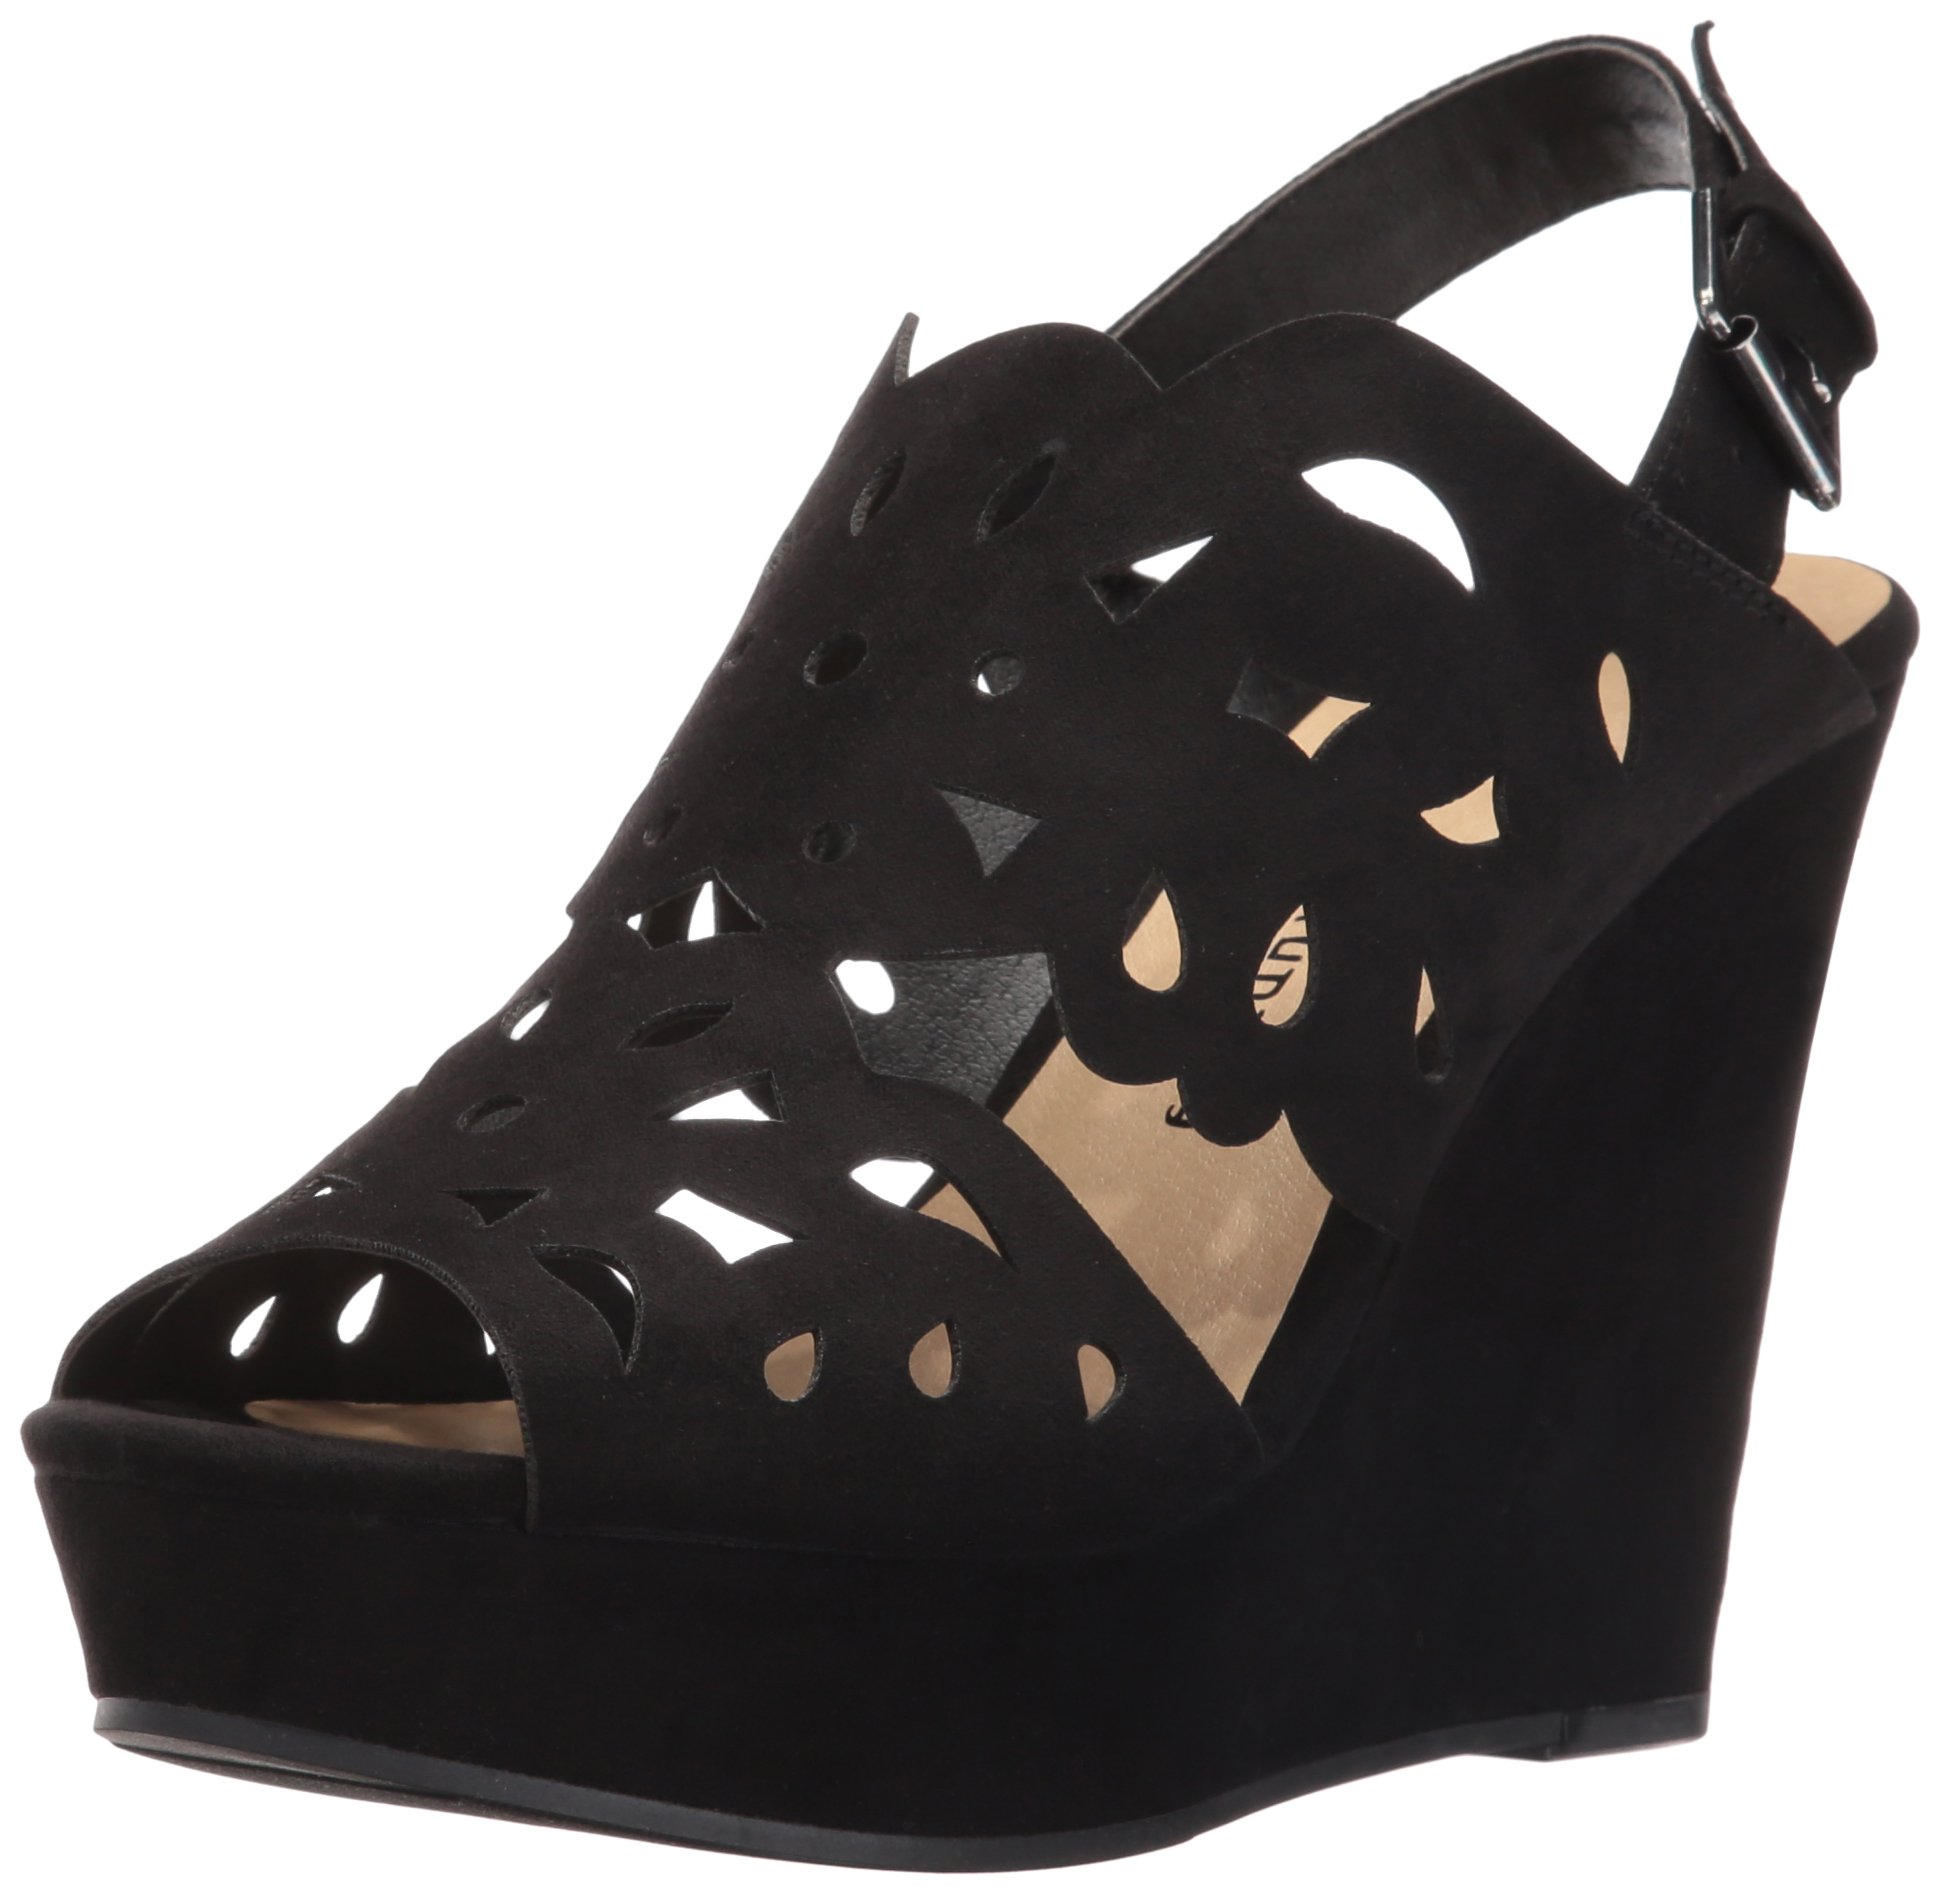 Chinese Laundry Women's in Love Wedge Sandal, Black Suede, 7.5 M US